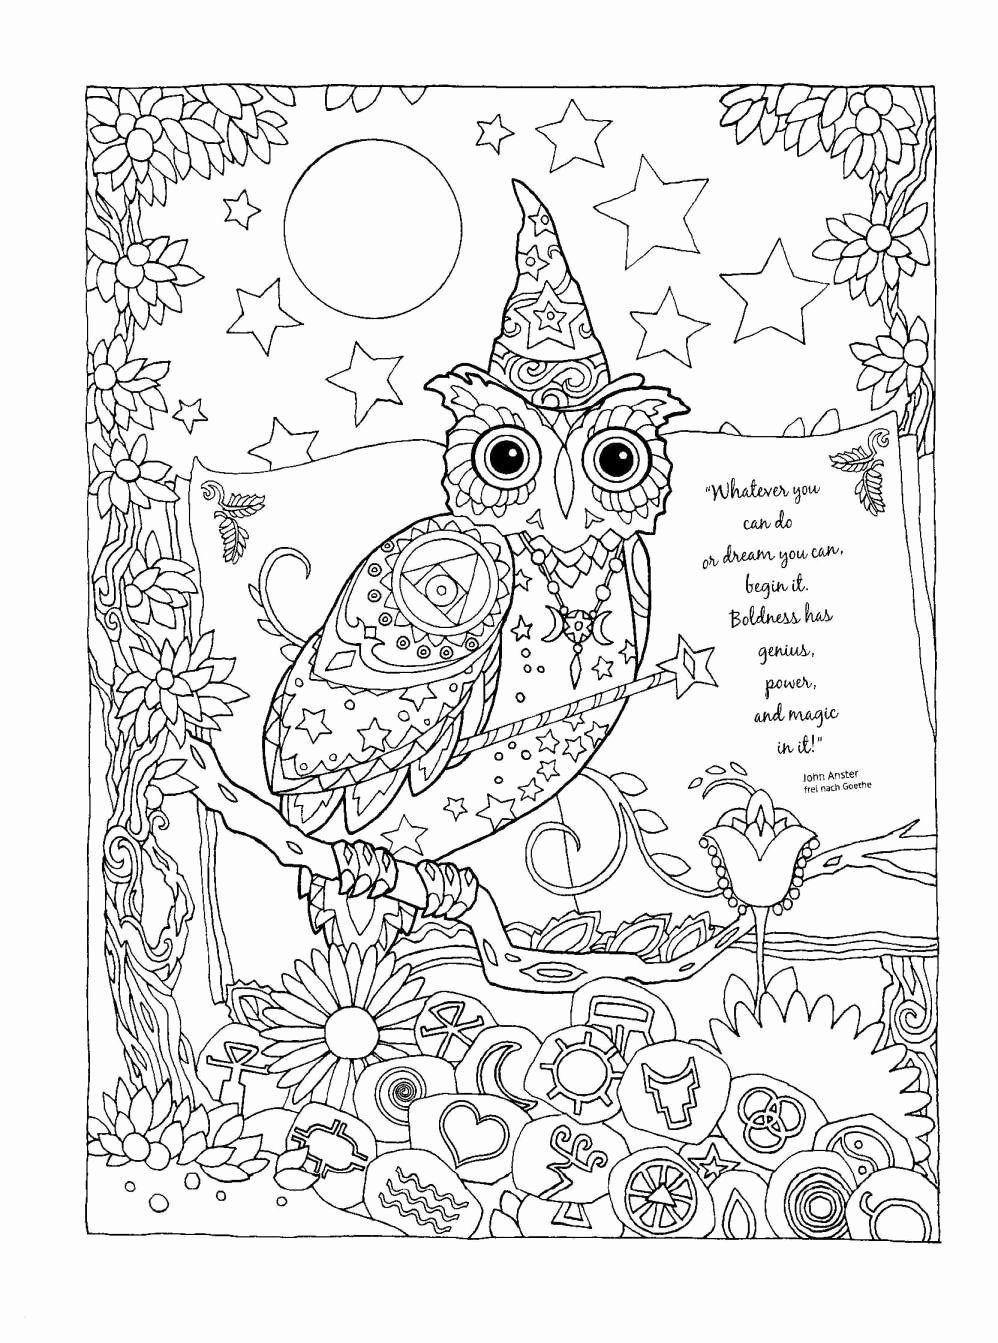 Coloring Activities For The Elderly New 29 Books The Bible Coloring Pages Download Coloring She Owl Coloring Pages Halloween Coloring Pages Bird Coloring Pages